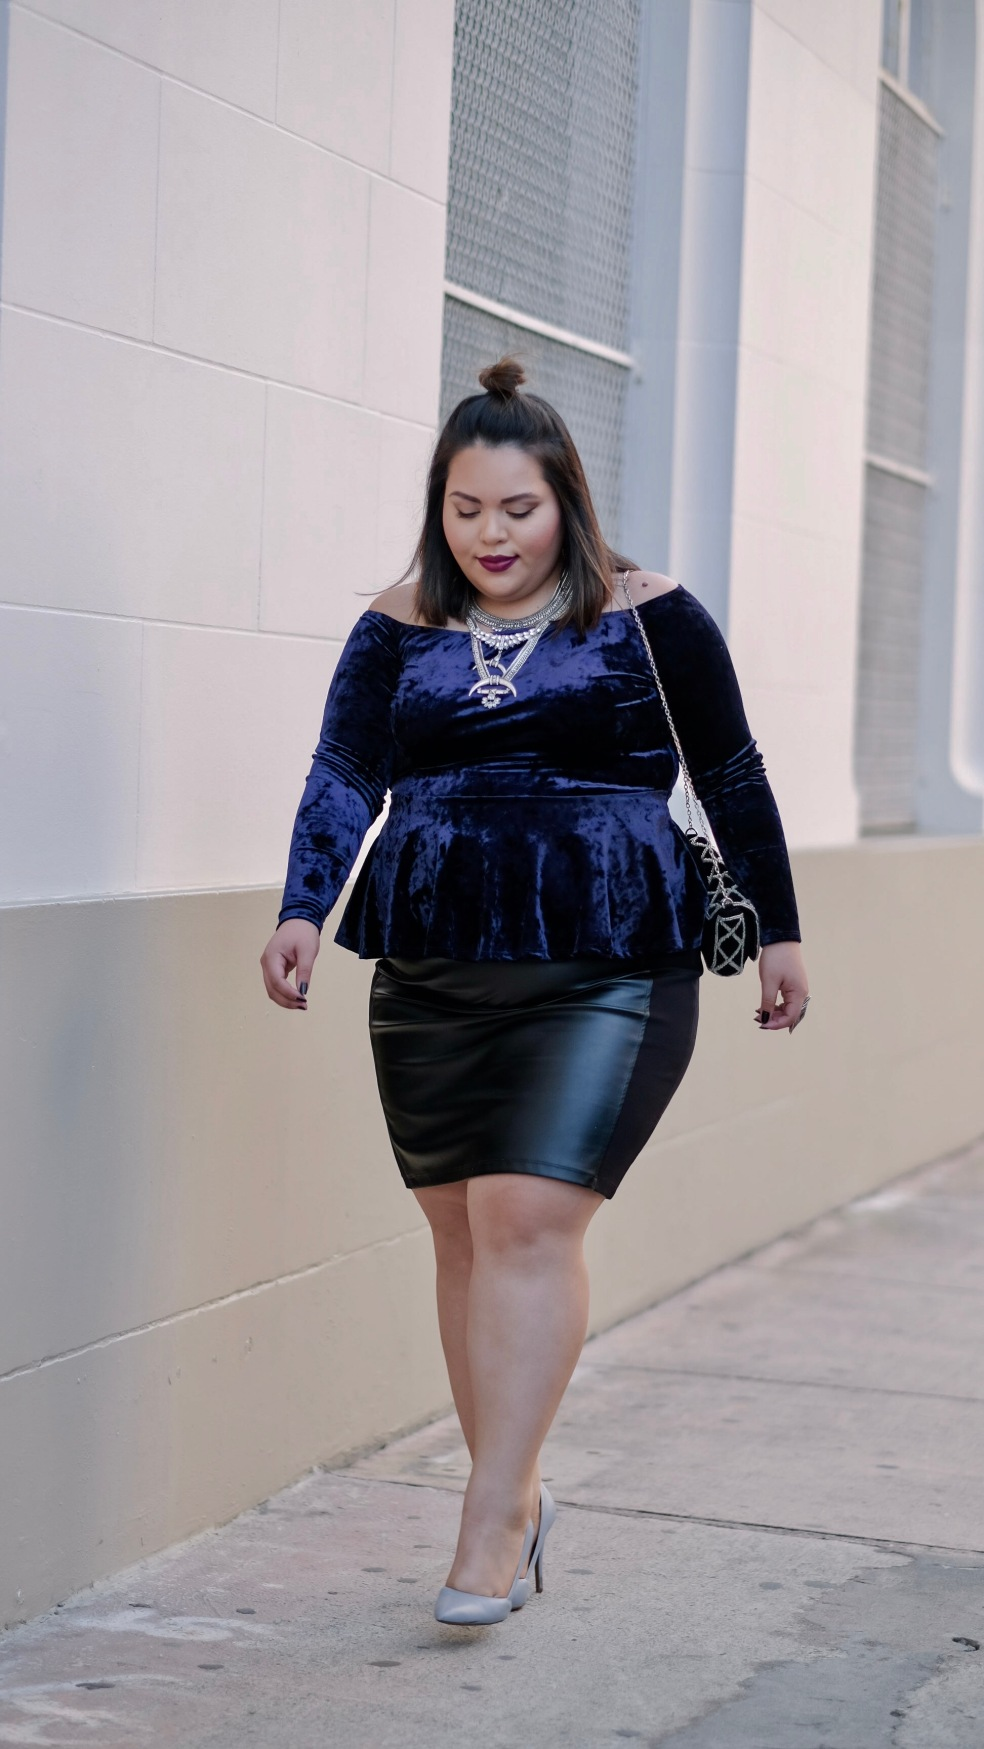 Let's Talk Chic Fashion Blogger Drea Wearing a Plus Size Crushed Velvet Off the Shoulder Peplum Top and Faux Leather Black Pencil Skirt